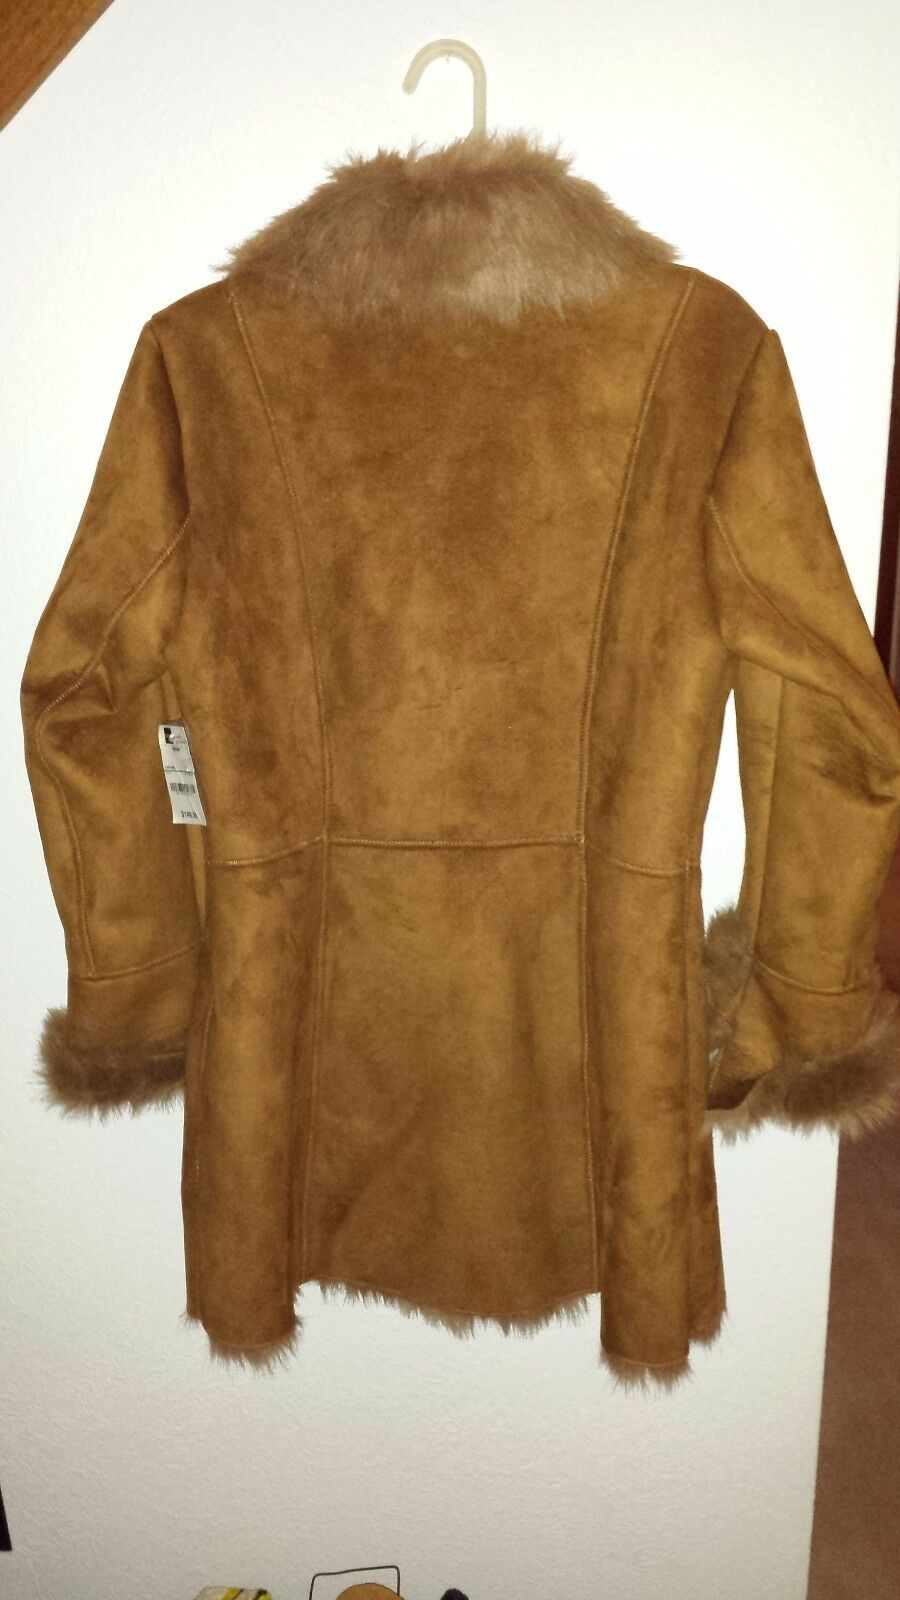 Ladies Ladies Ladies dress coat faux fur lining medium caramel brown women's mid length new 609f42